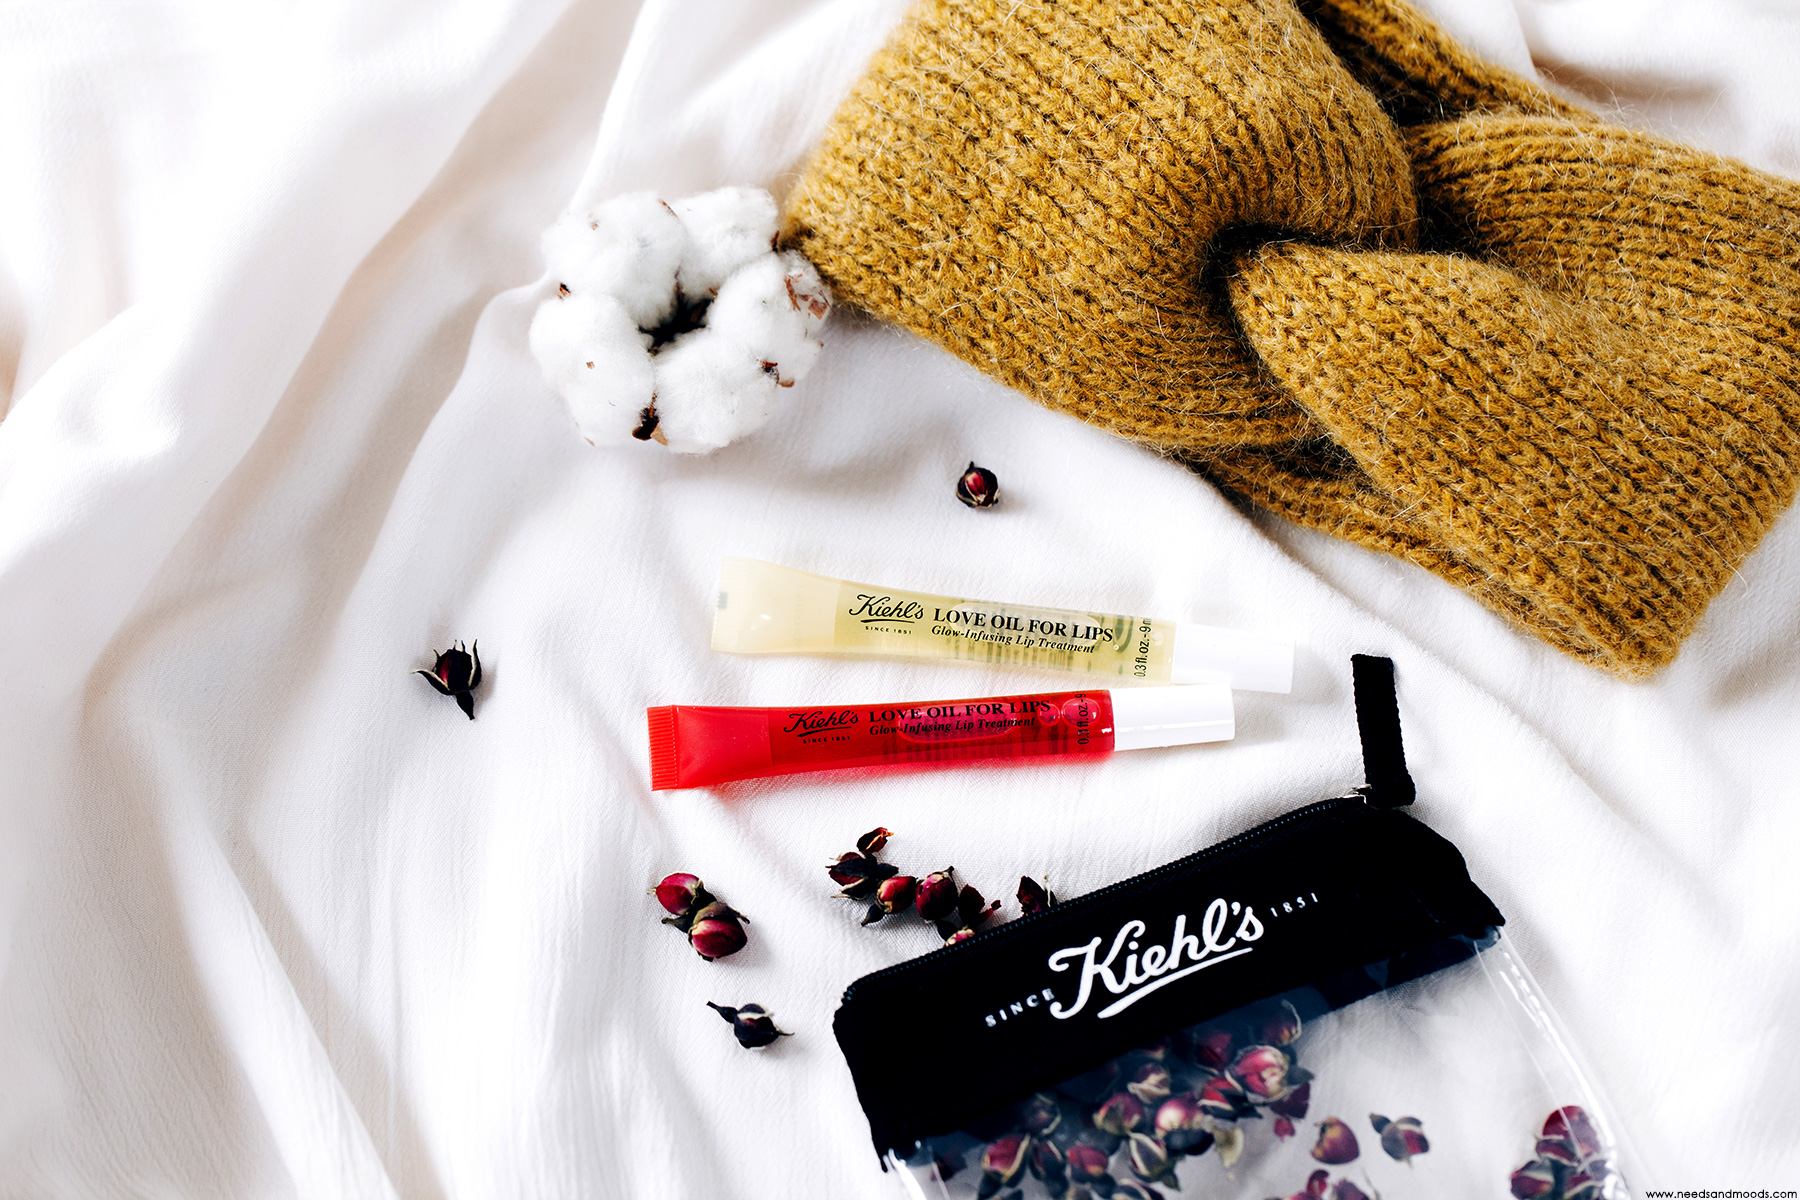 kiehls love oil for lips composition test avis